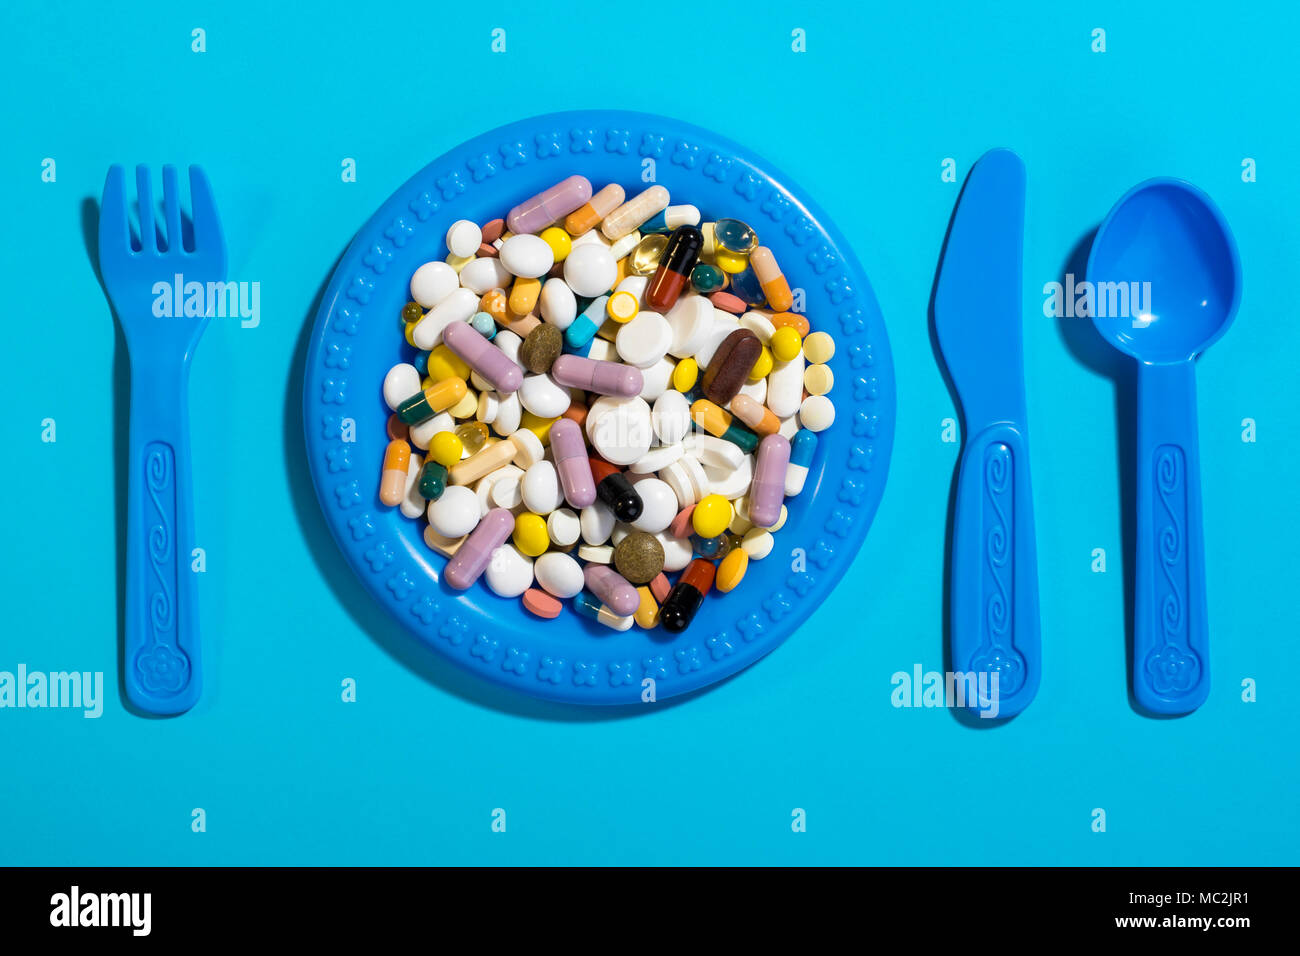 Children's plate with cutlery filled with colorful pills. Concept for overdose medicines in childrens's diet. - Stock Image